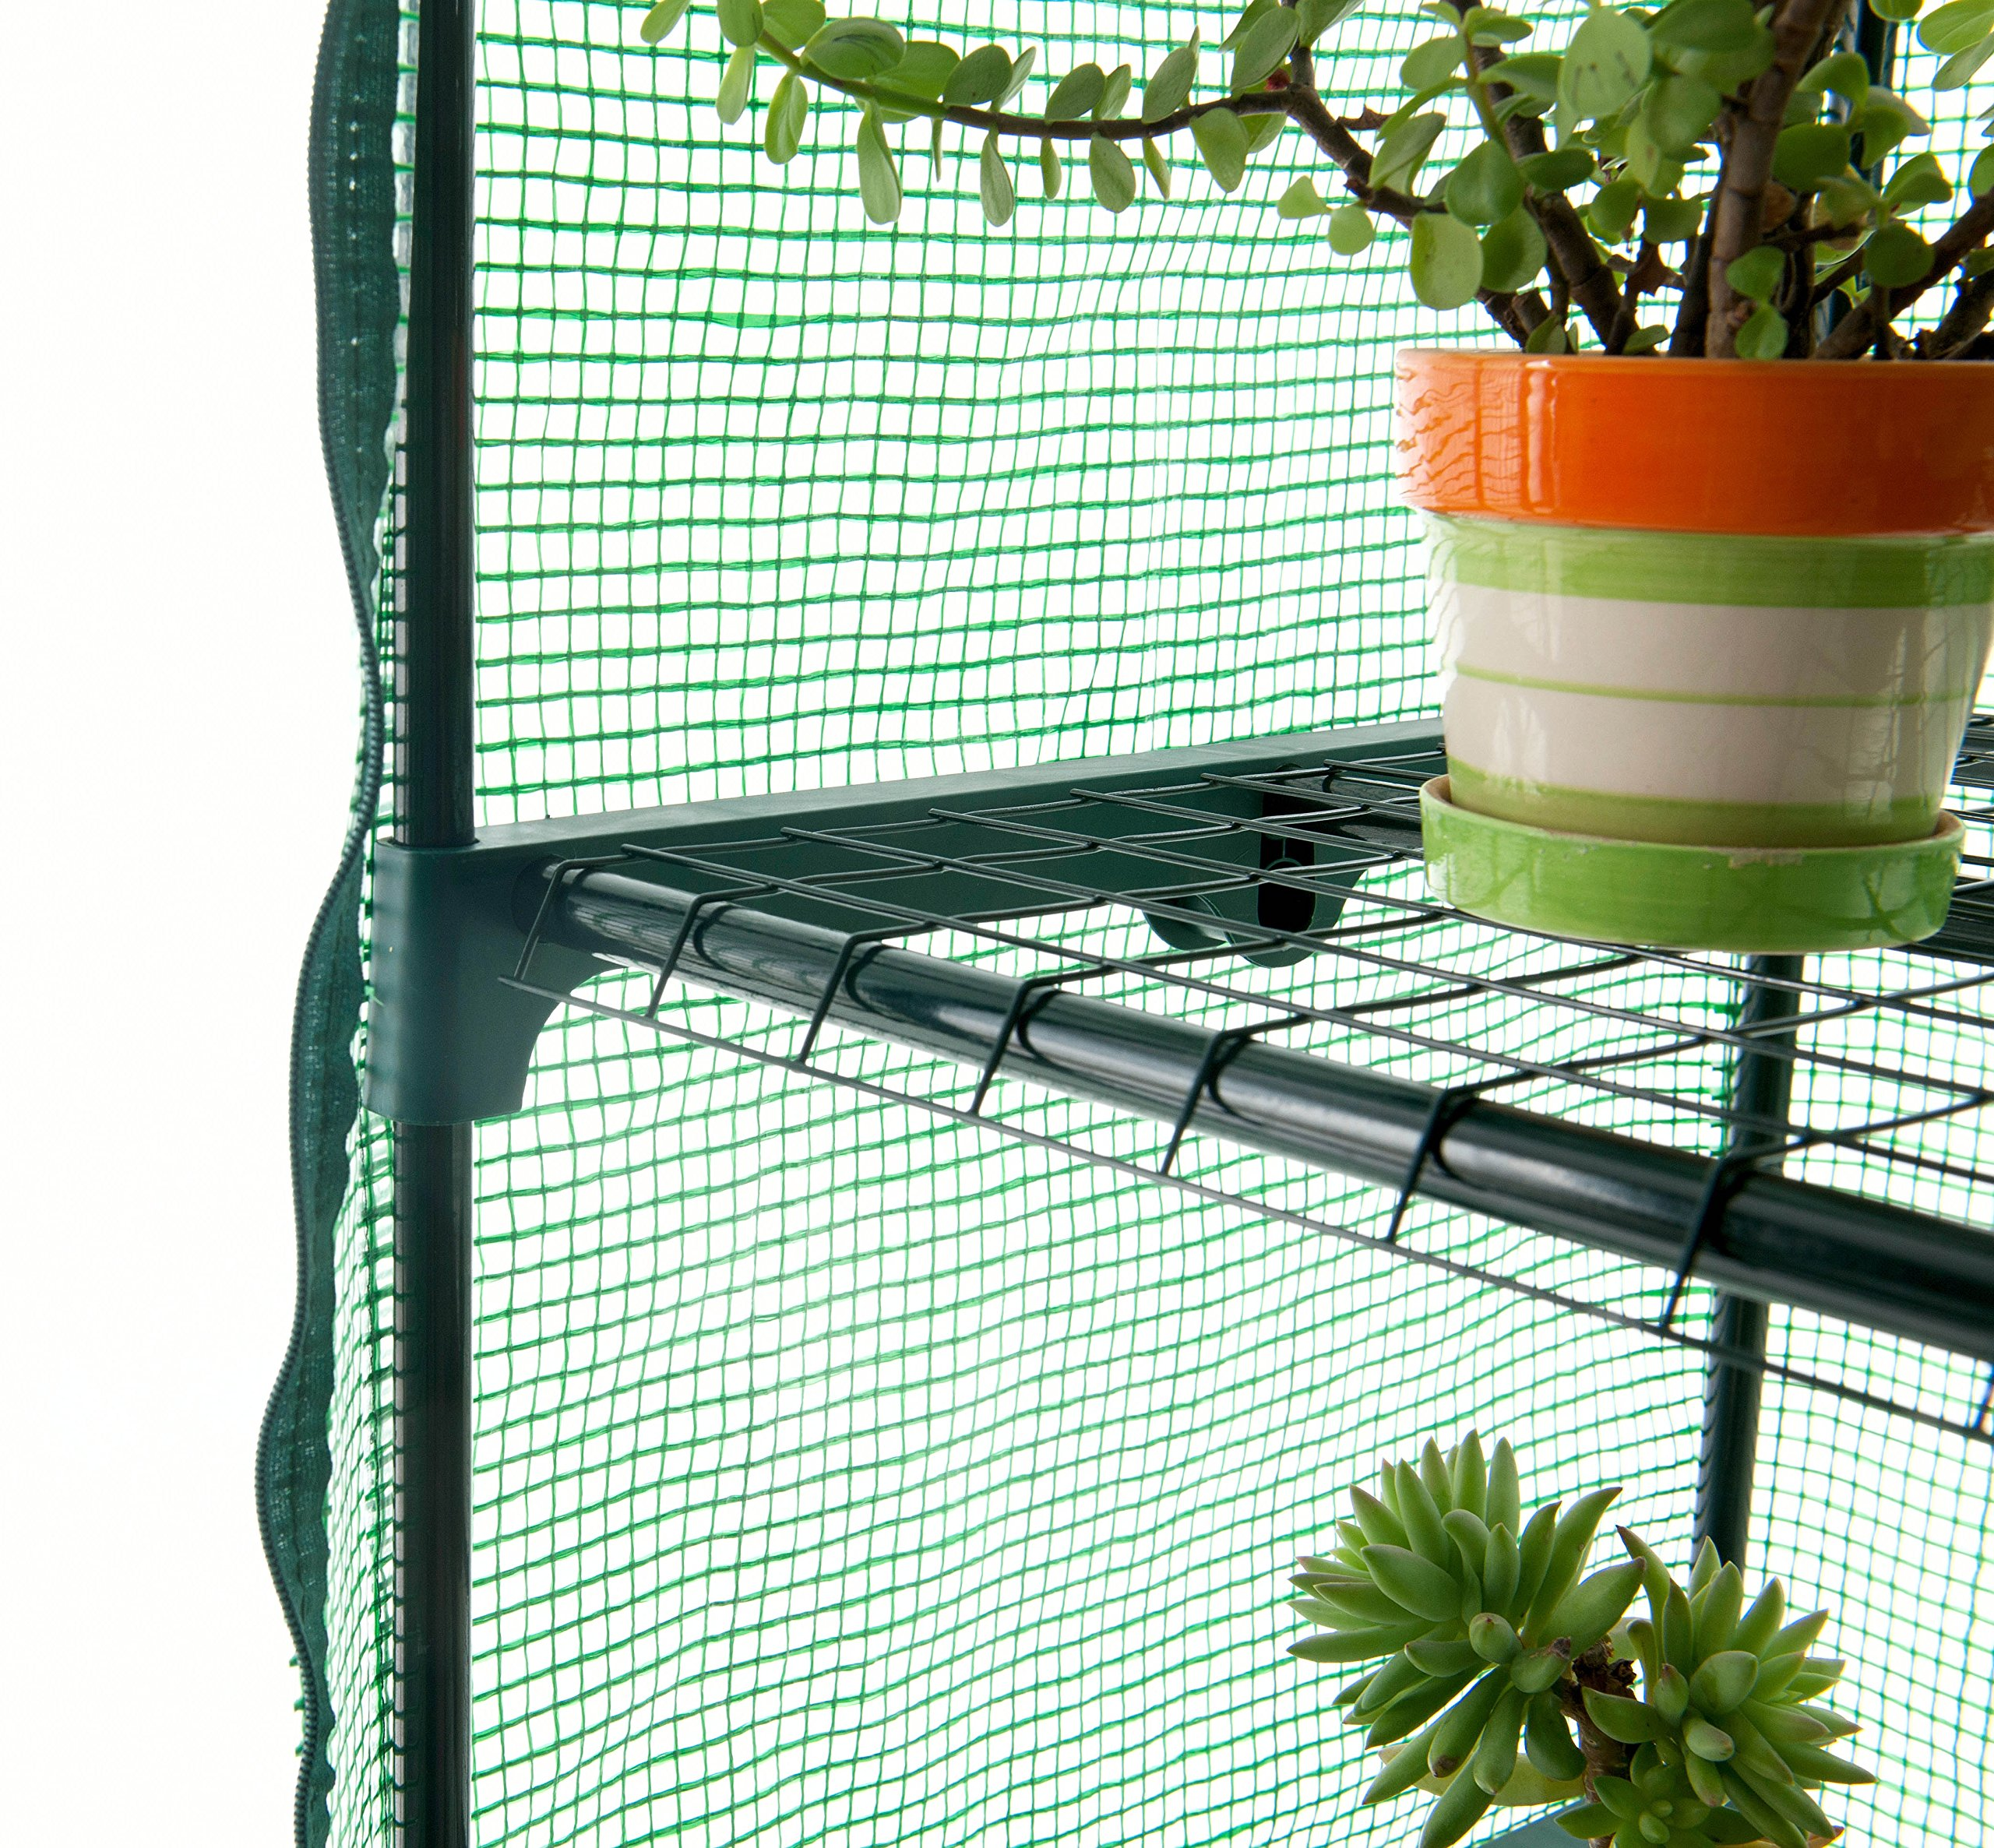 GOJOOASIS 4 Tier Mini Portable Garden Greenhouse on Wheels Plants Shed Hot House for Indoor and Outdoor by GOJOOASIS (Image #6)